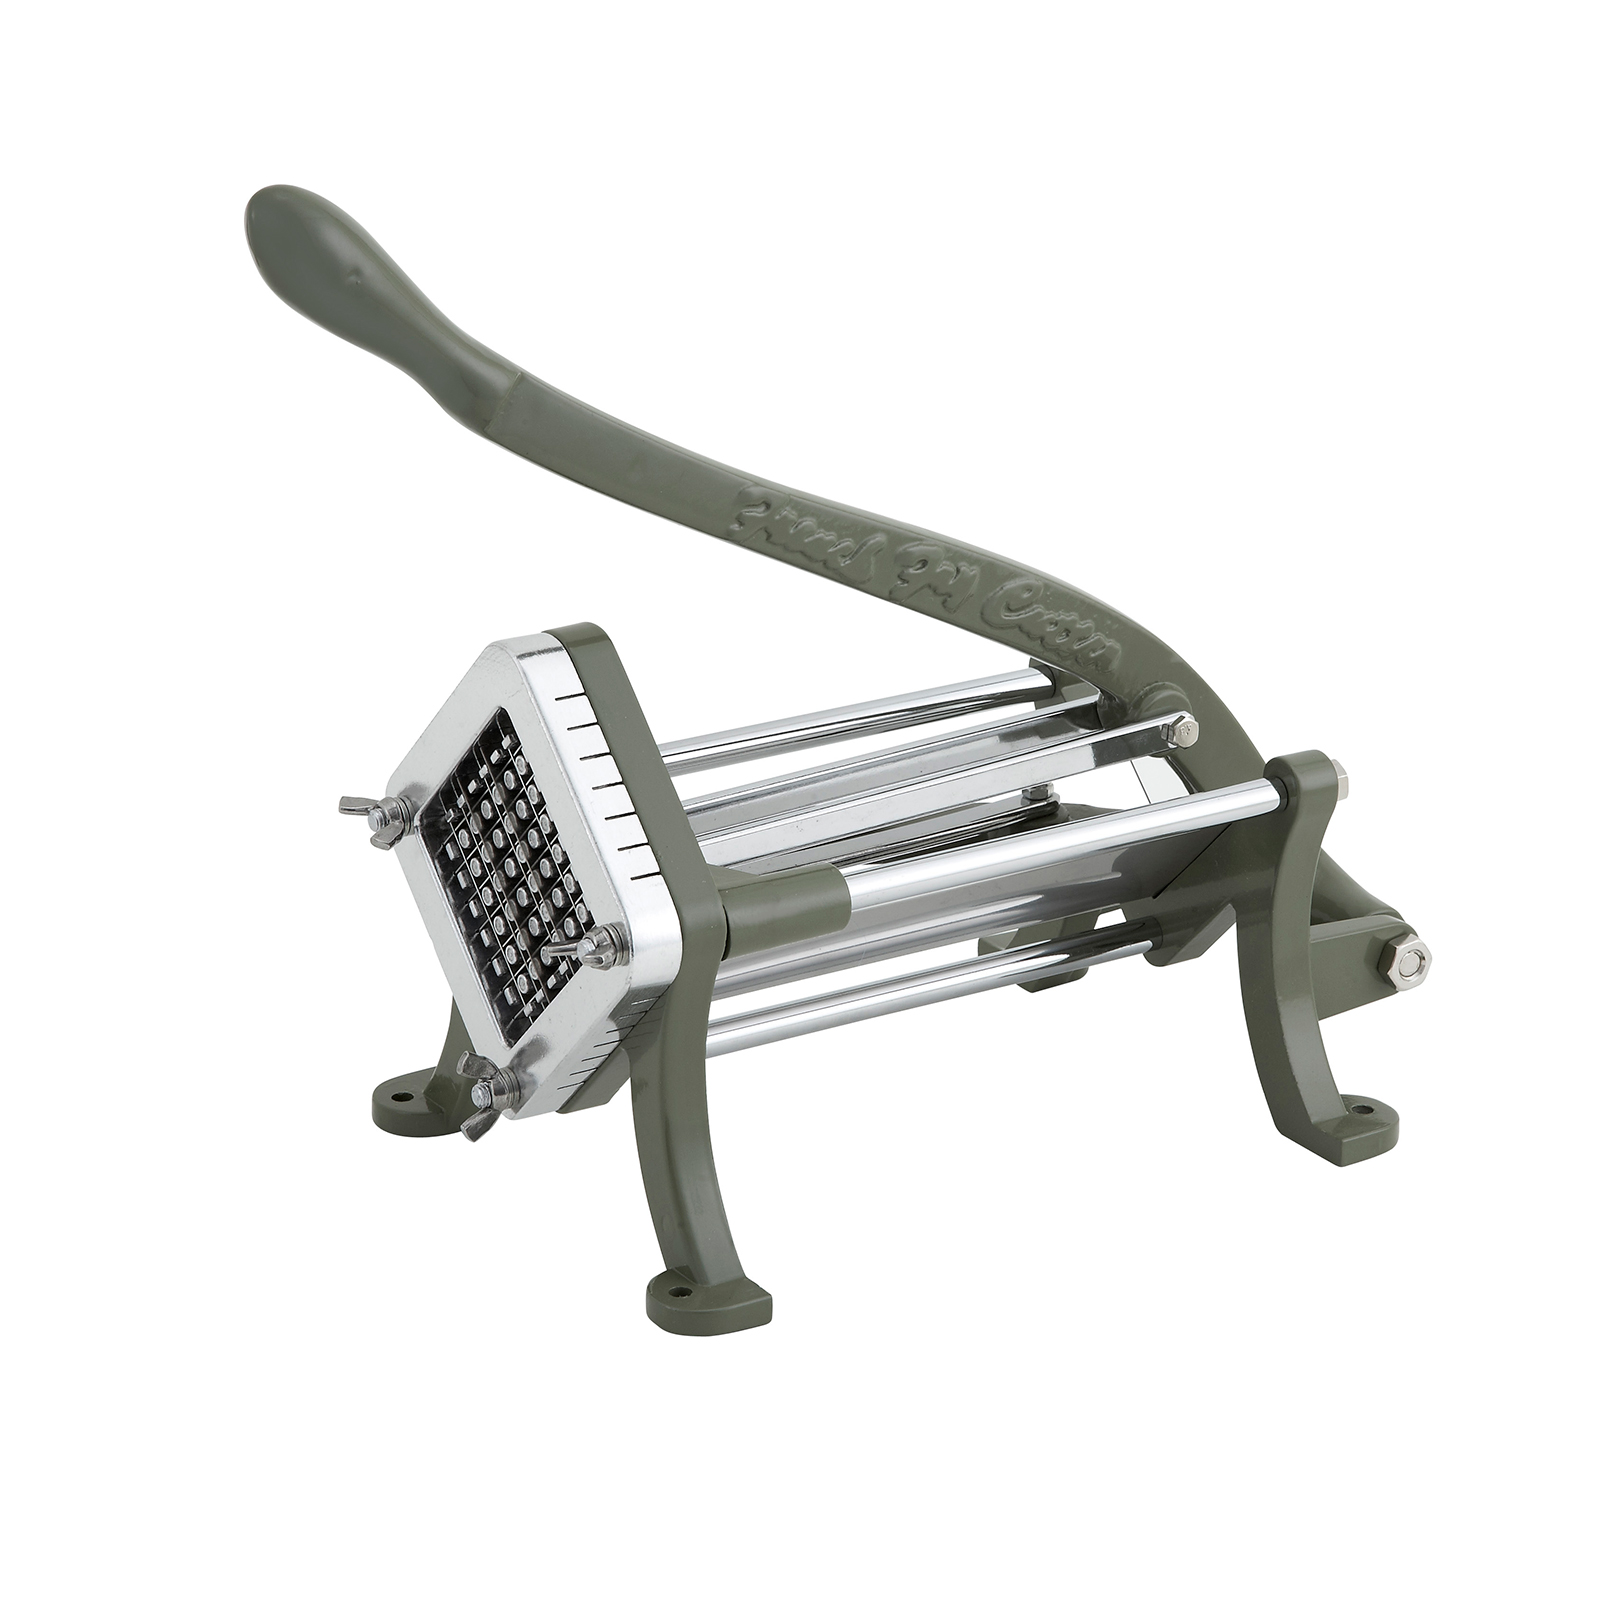 Winco FFC-375 french fry cutter